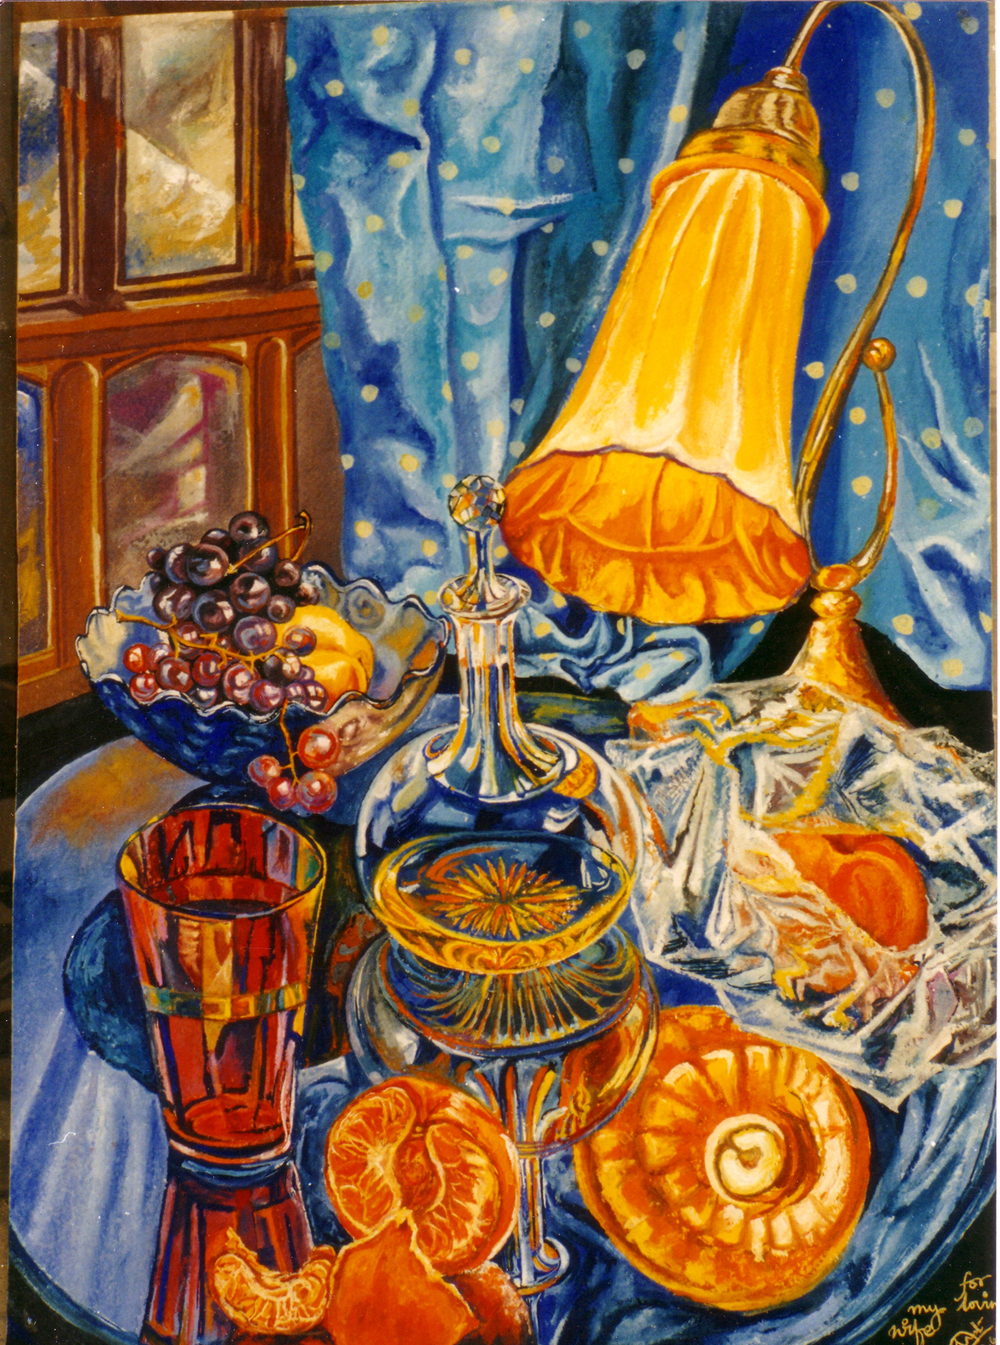 Still Life with Oranges and Orange Lamp